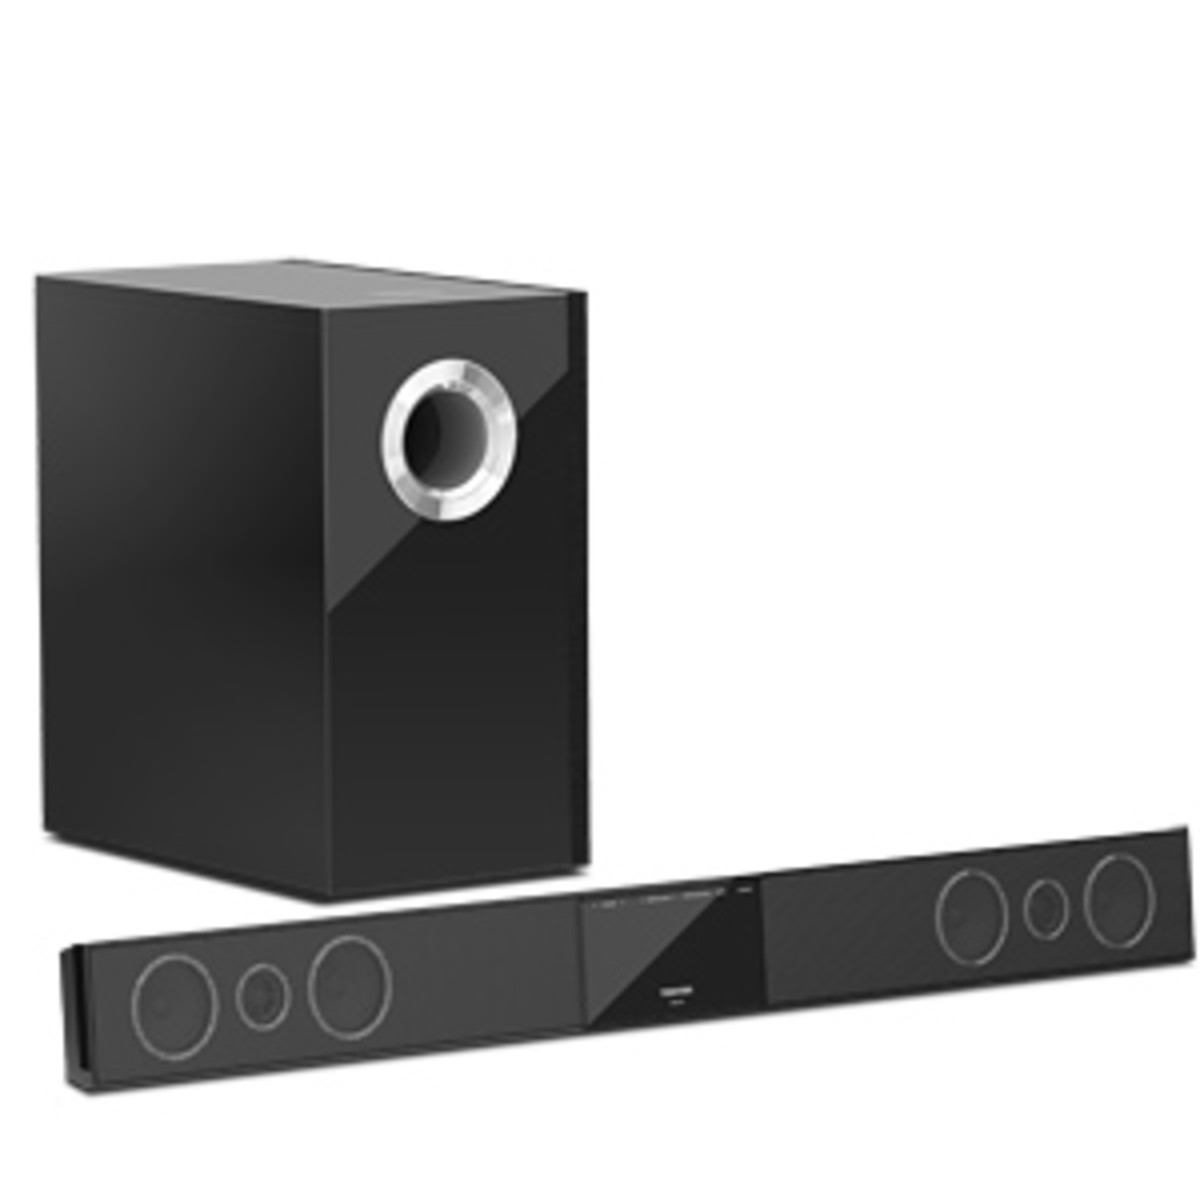 The Toshiba SBX4250KN sound bar offers a wireless Bluetooth subwoofer.